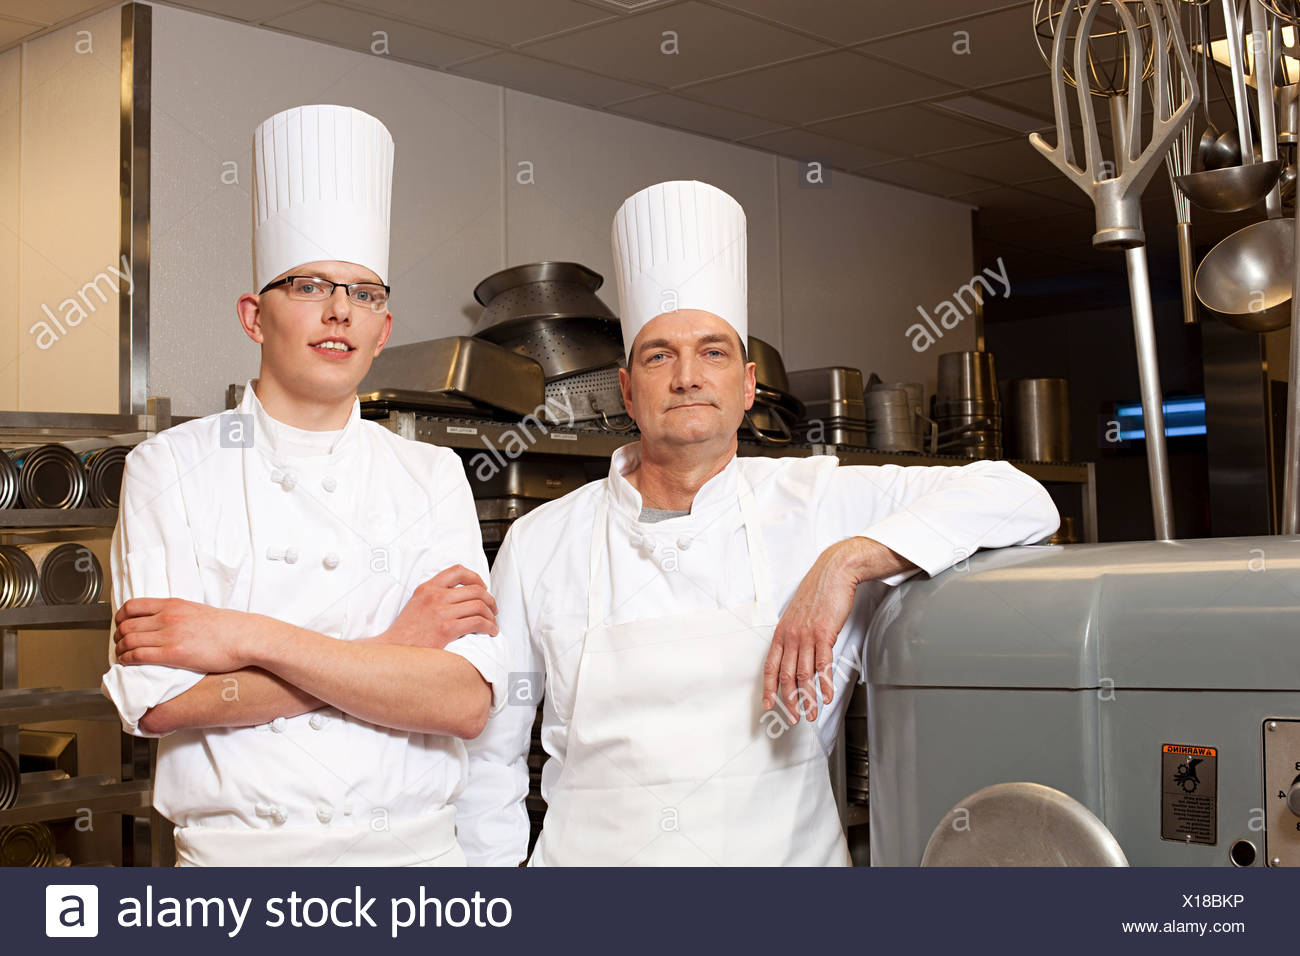 Chefs in commercial kitchen, portrait - Stock Image